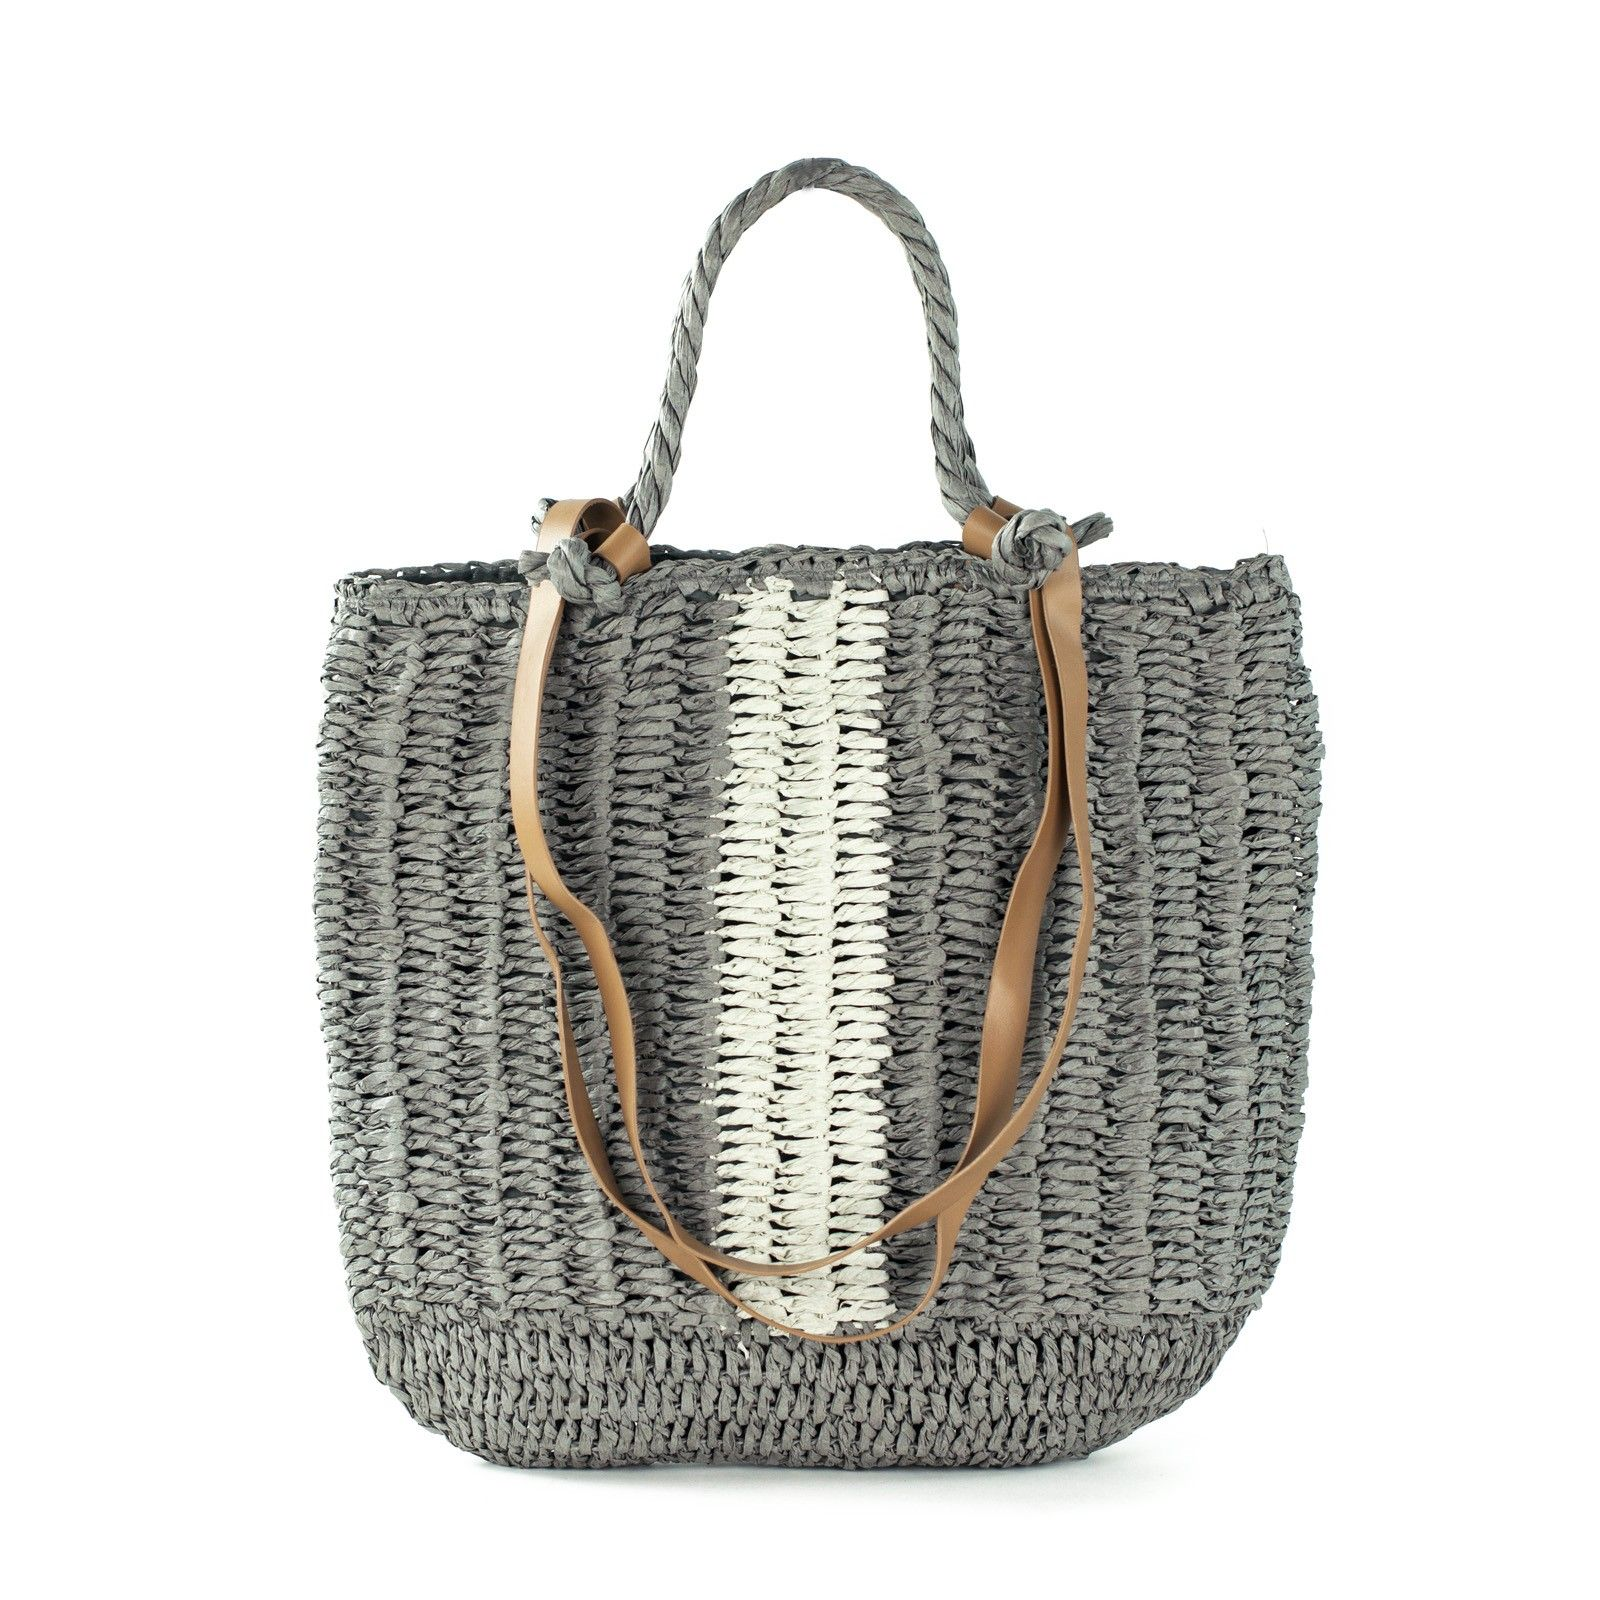 Two-coloured summer bag. #bag #summer Szaleo.pl | Be new fashioned & accessorized!